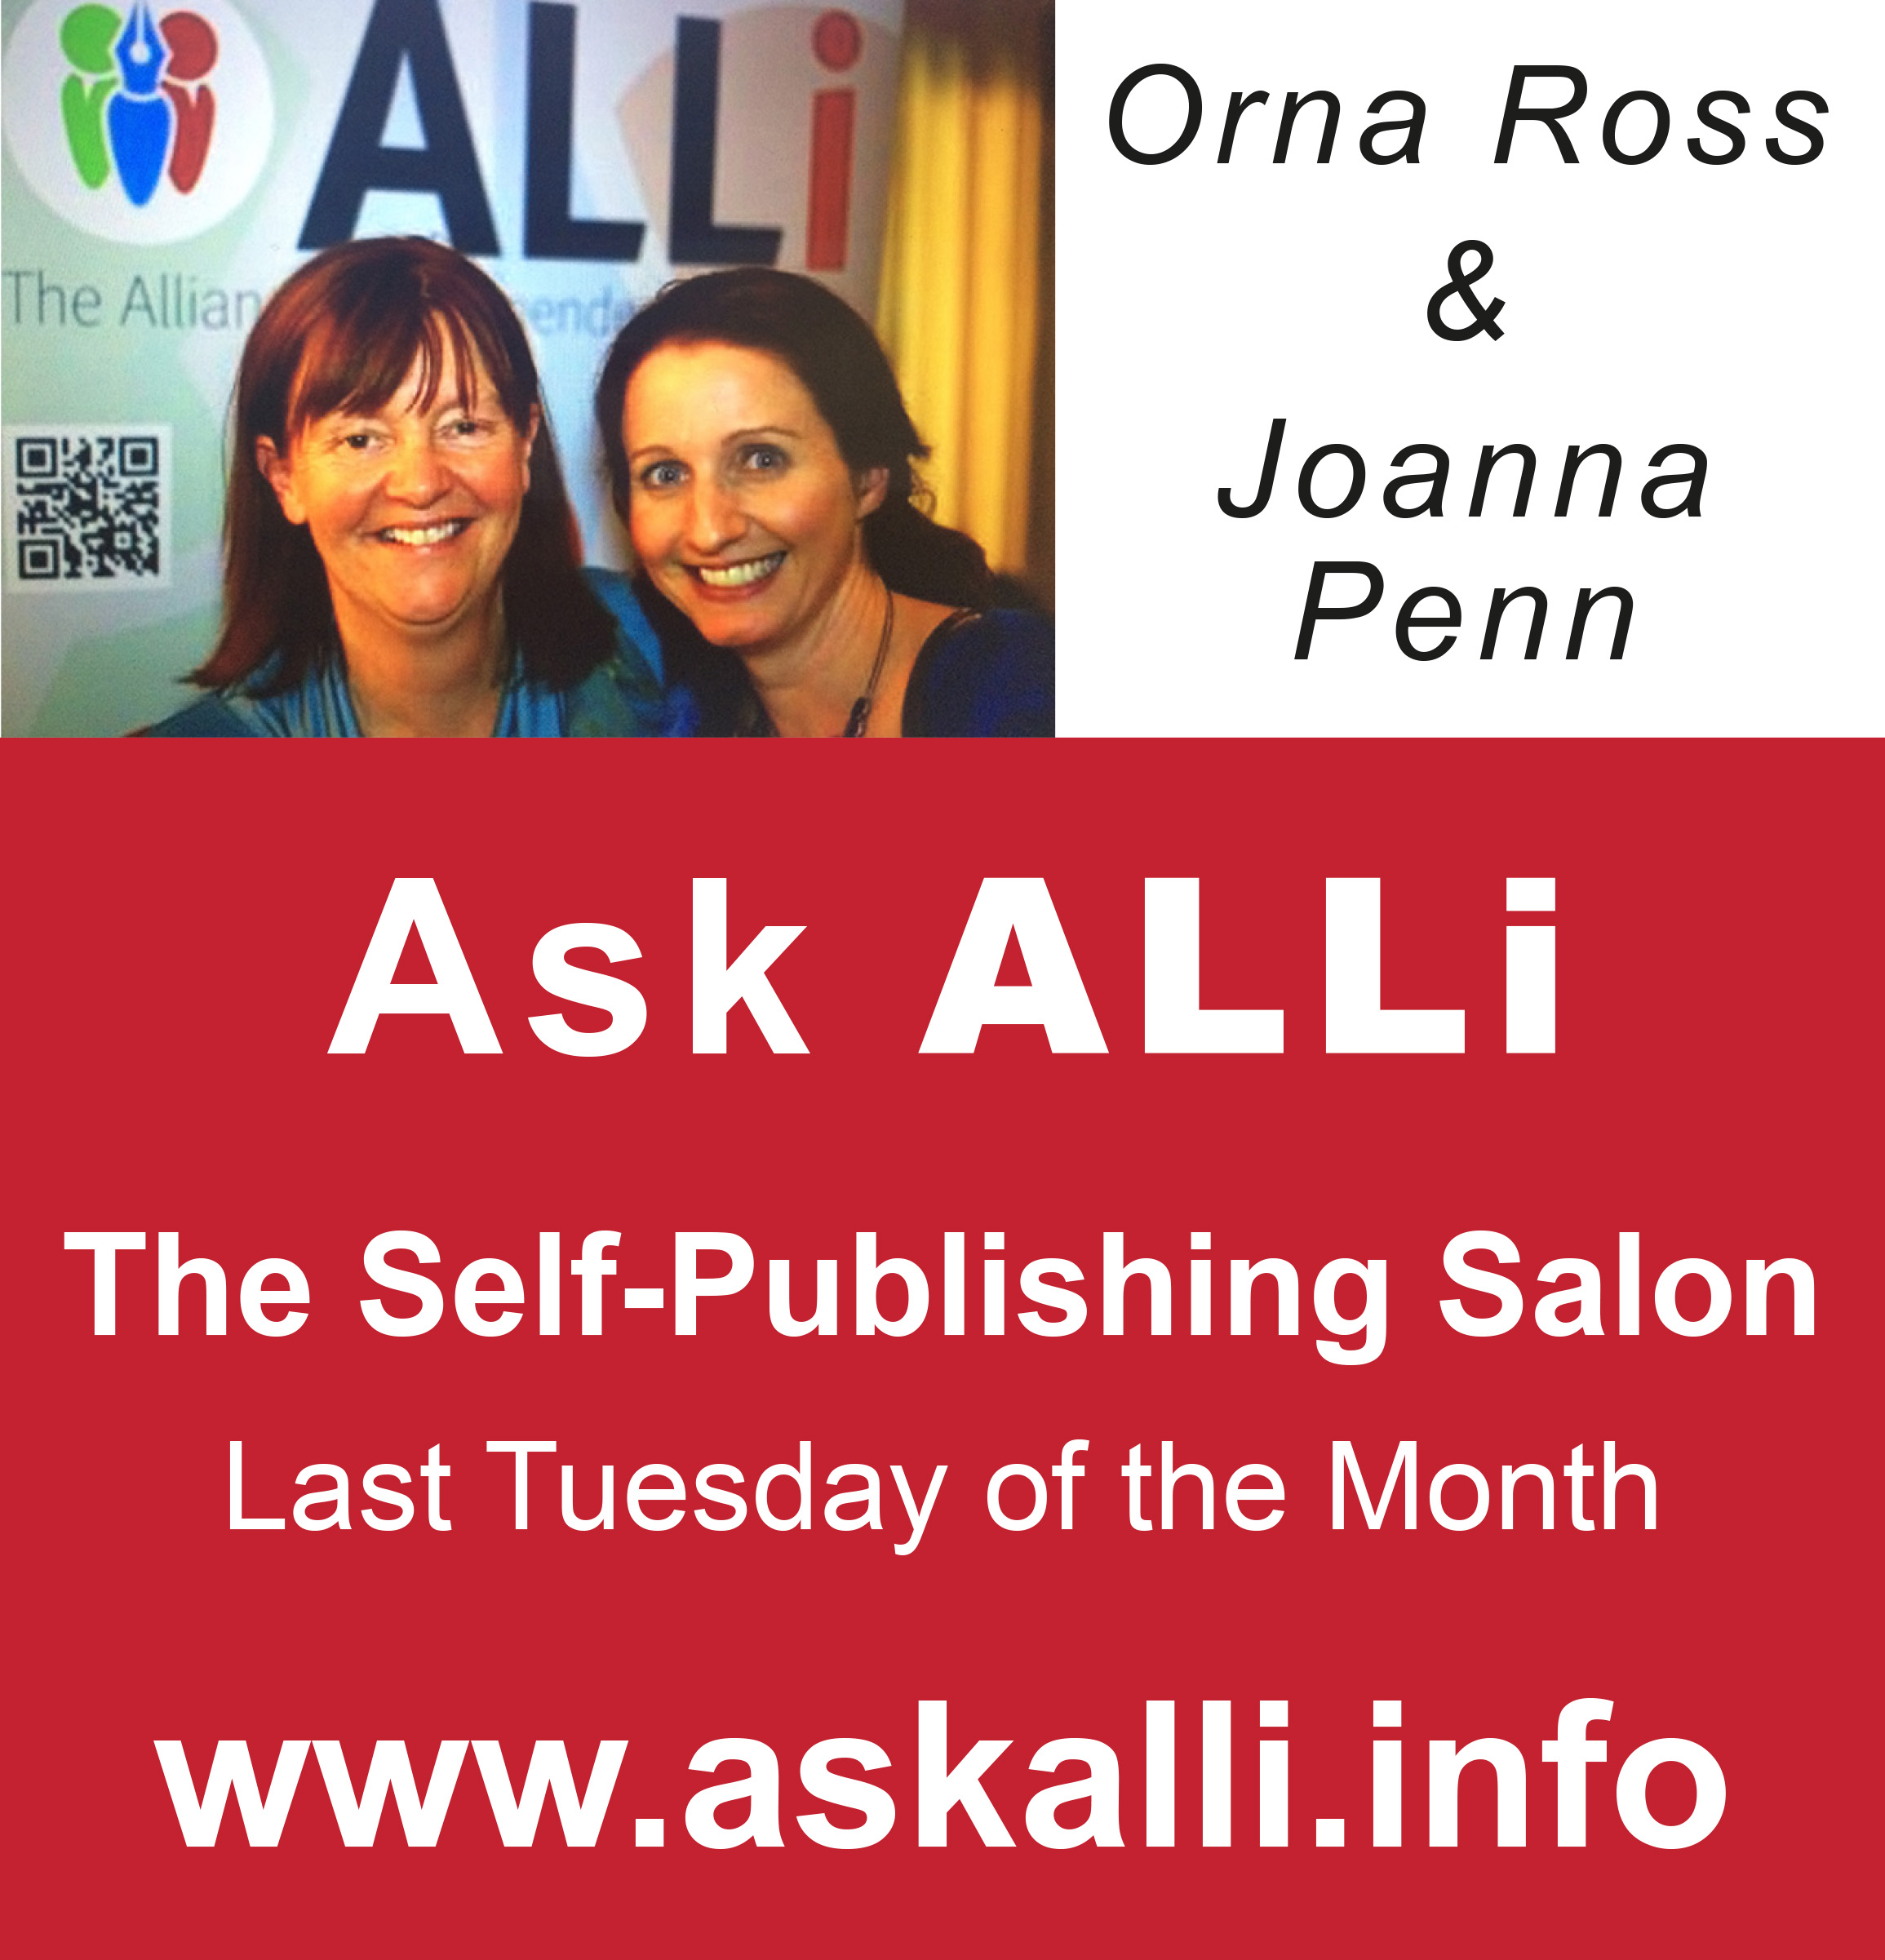 Self-Publishing Salon With Orna Ross & Joanna Penn: Video, Podcast & Event Recap